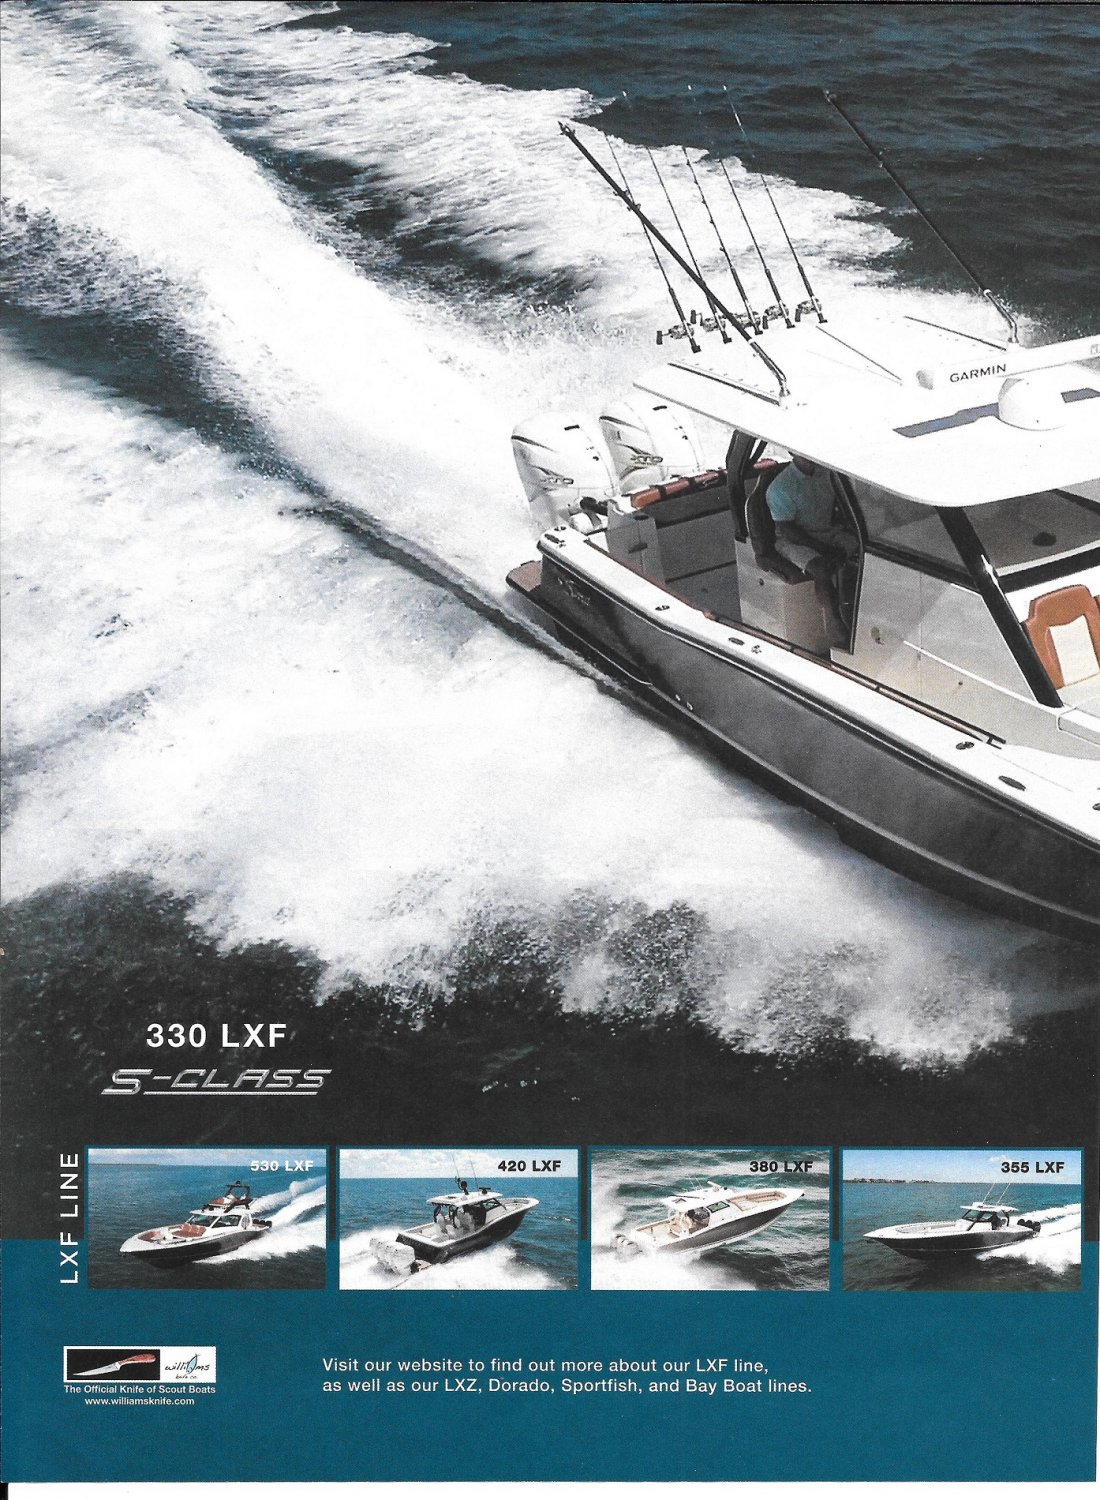 2021 Scout 330 LXF S- Class Yacht 2 Page Color Ad- Nice Photo